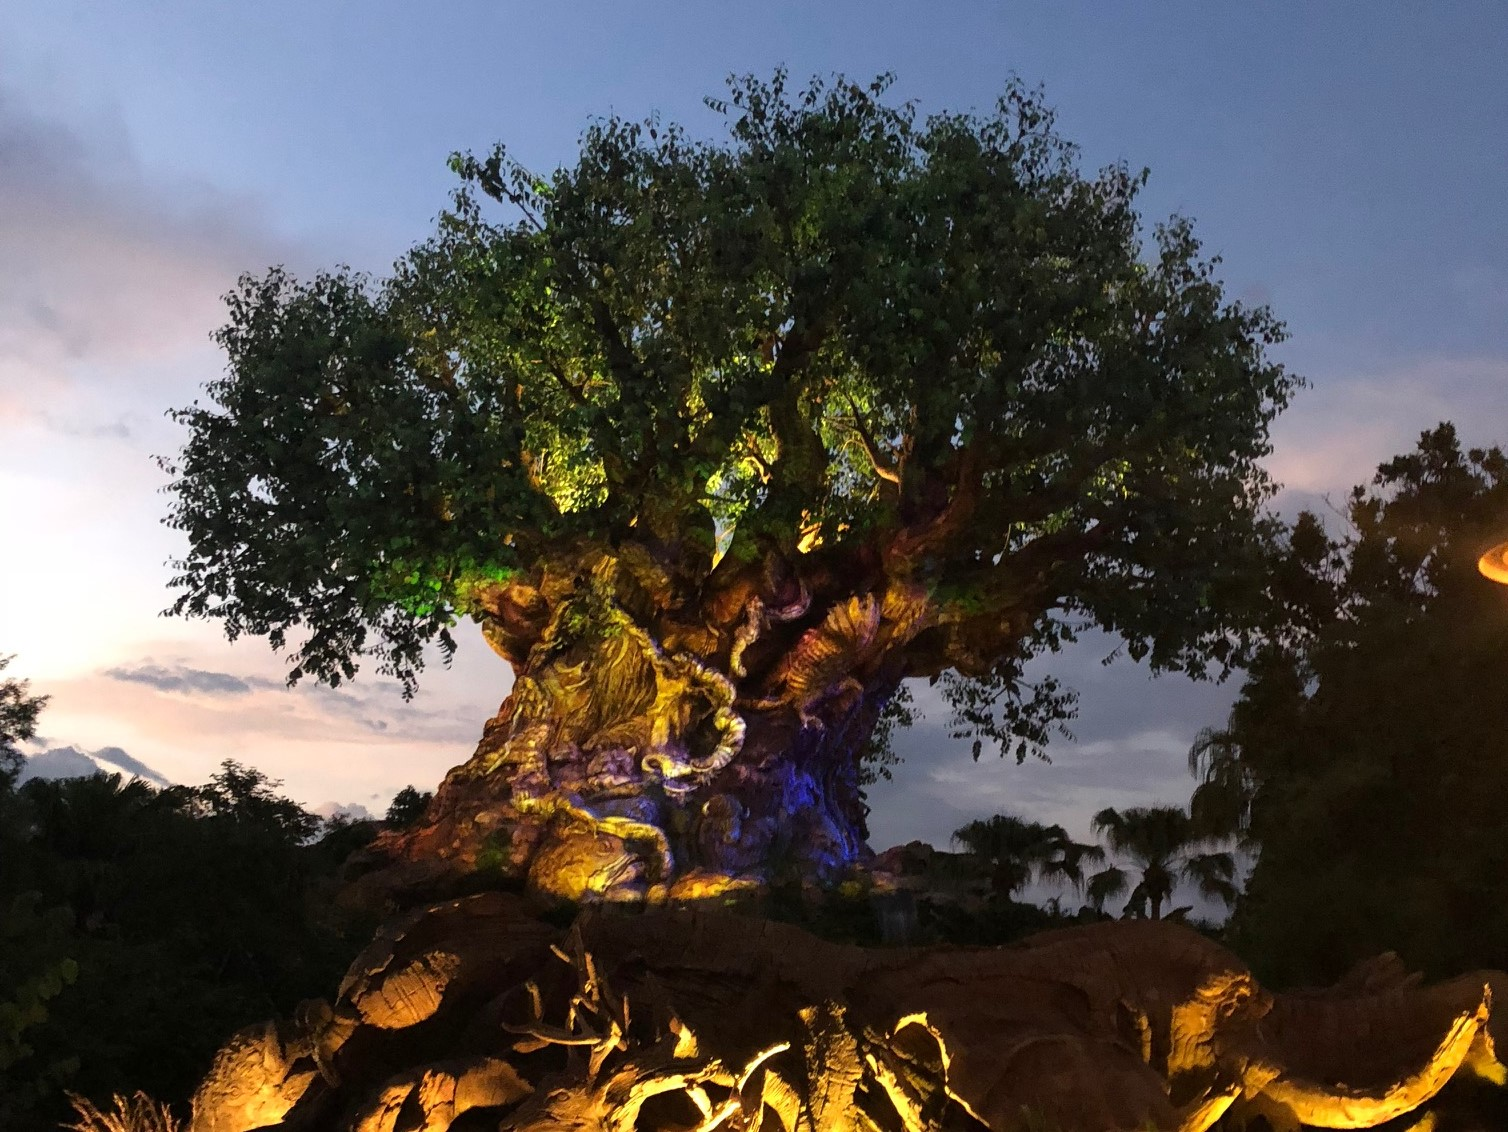 5 Rookie Mistakes to Avoid at Disney's Animal Kingdom